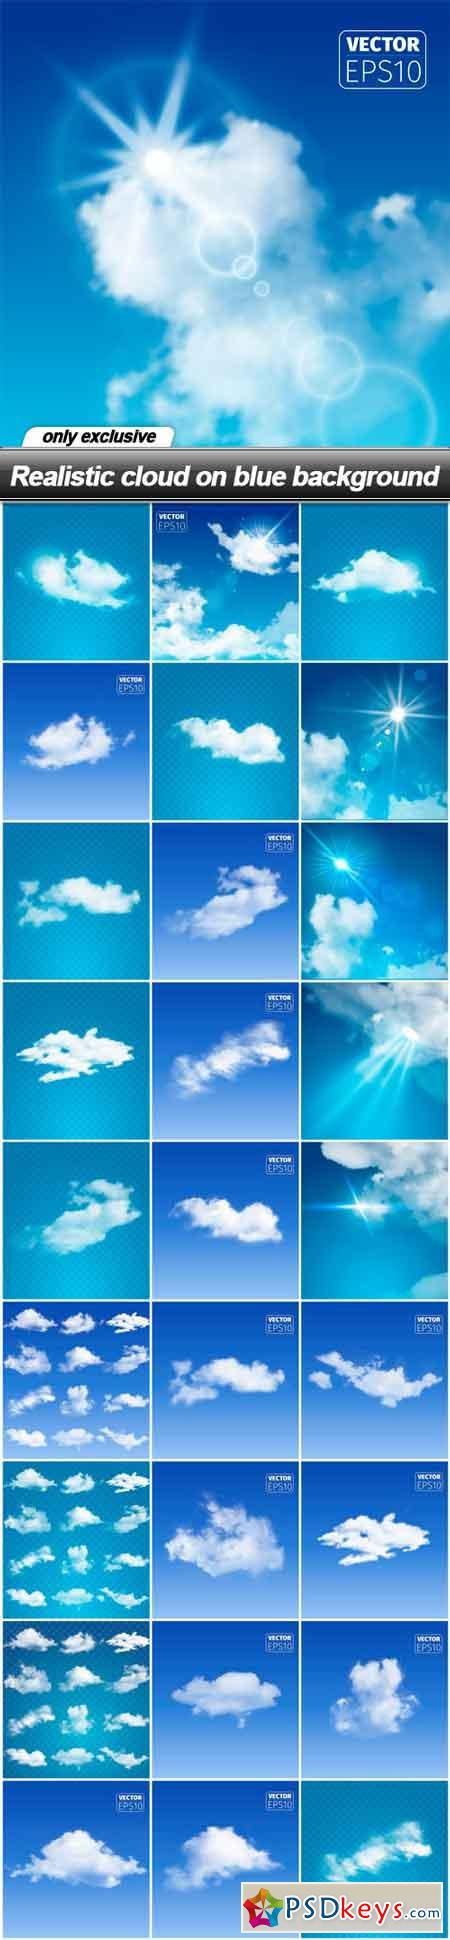 Realistic cloud on blue background - 28 EPS